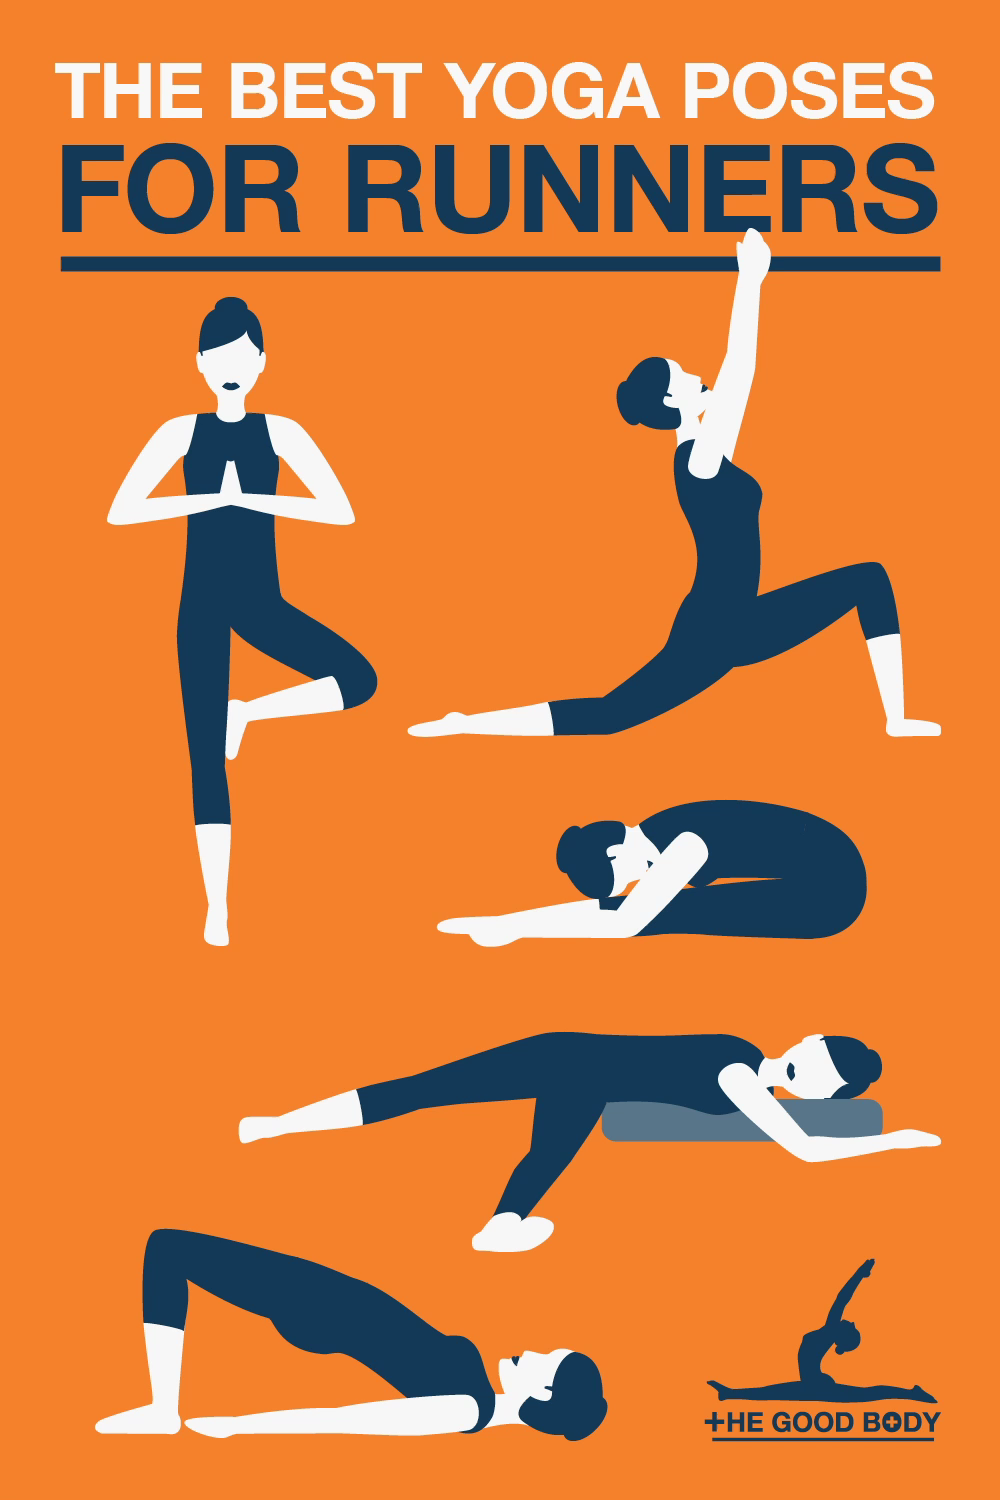 10 Best Yoga Poses For Runners Essential Stretches For Pre And Post Running Video Video Cool Yoga Poses Running Stretches Running Muscles